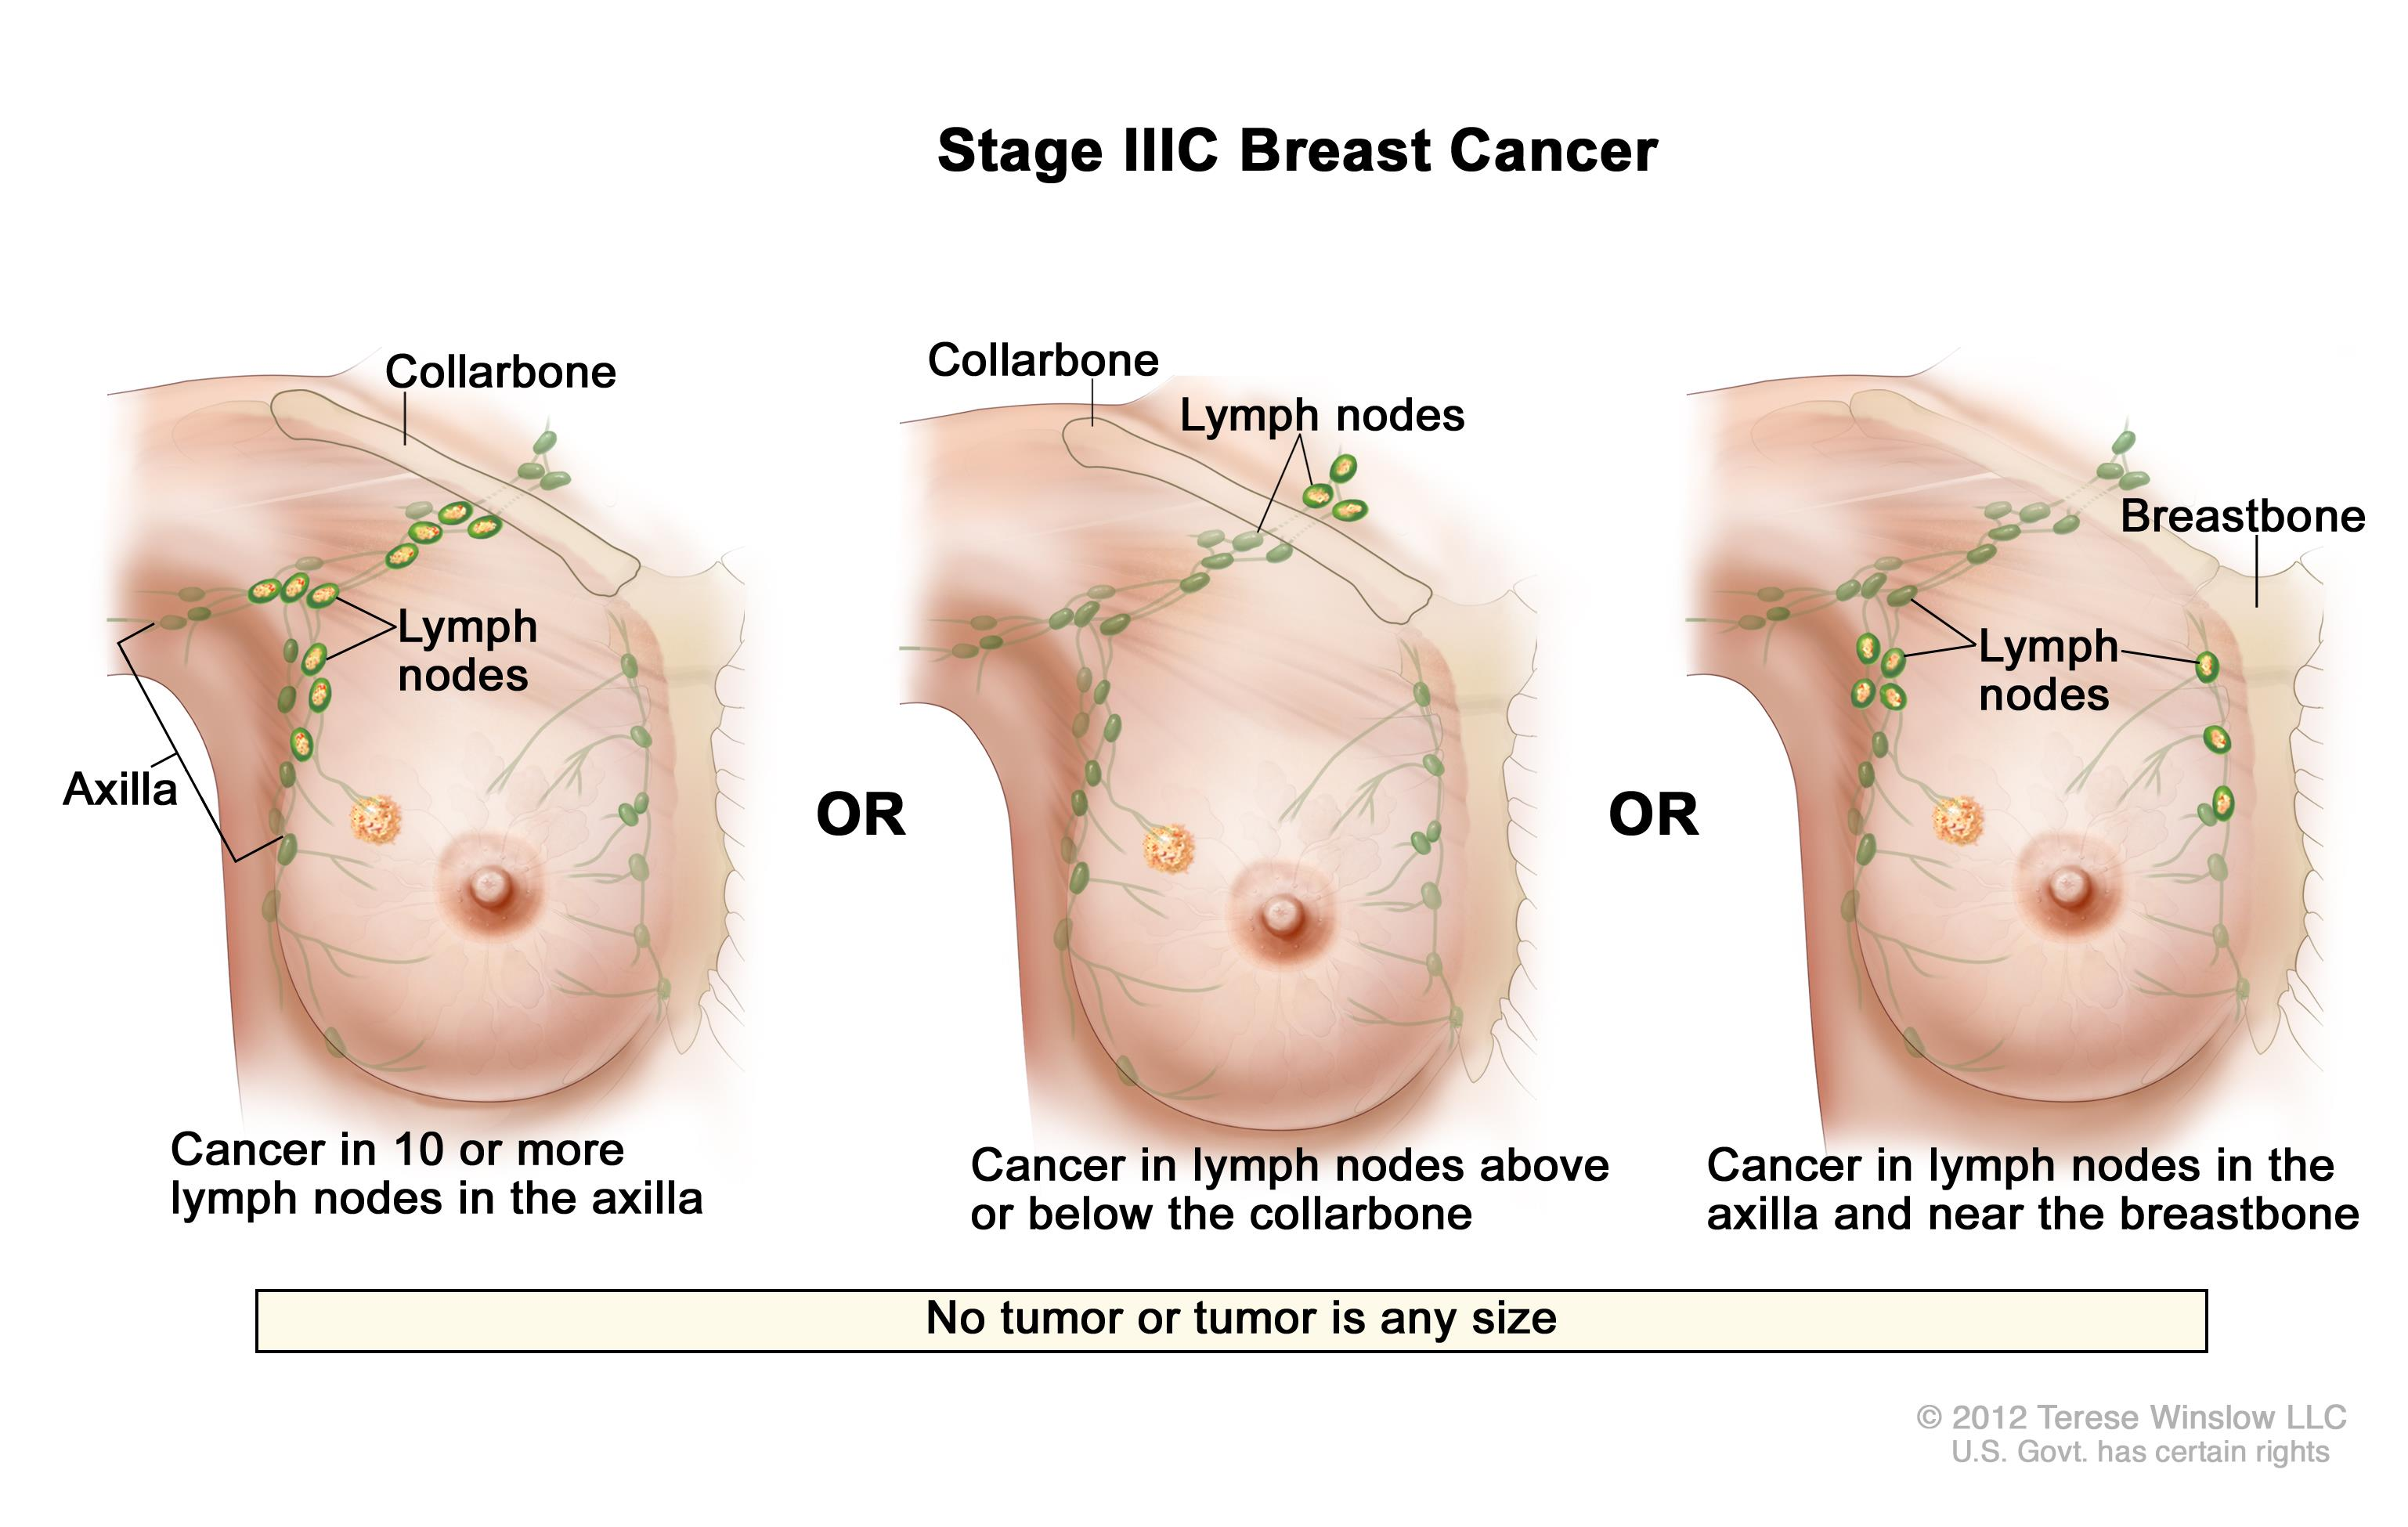 Lymph Node Removal & Lymphedema - Breast cancer